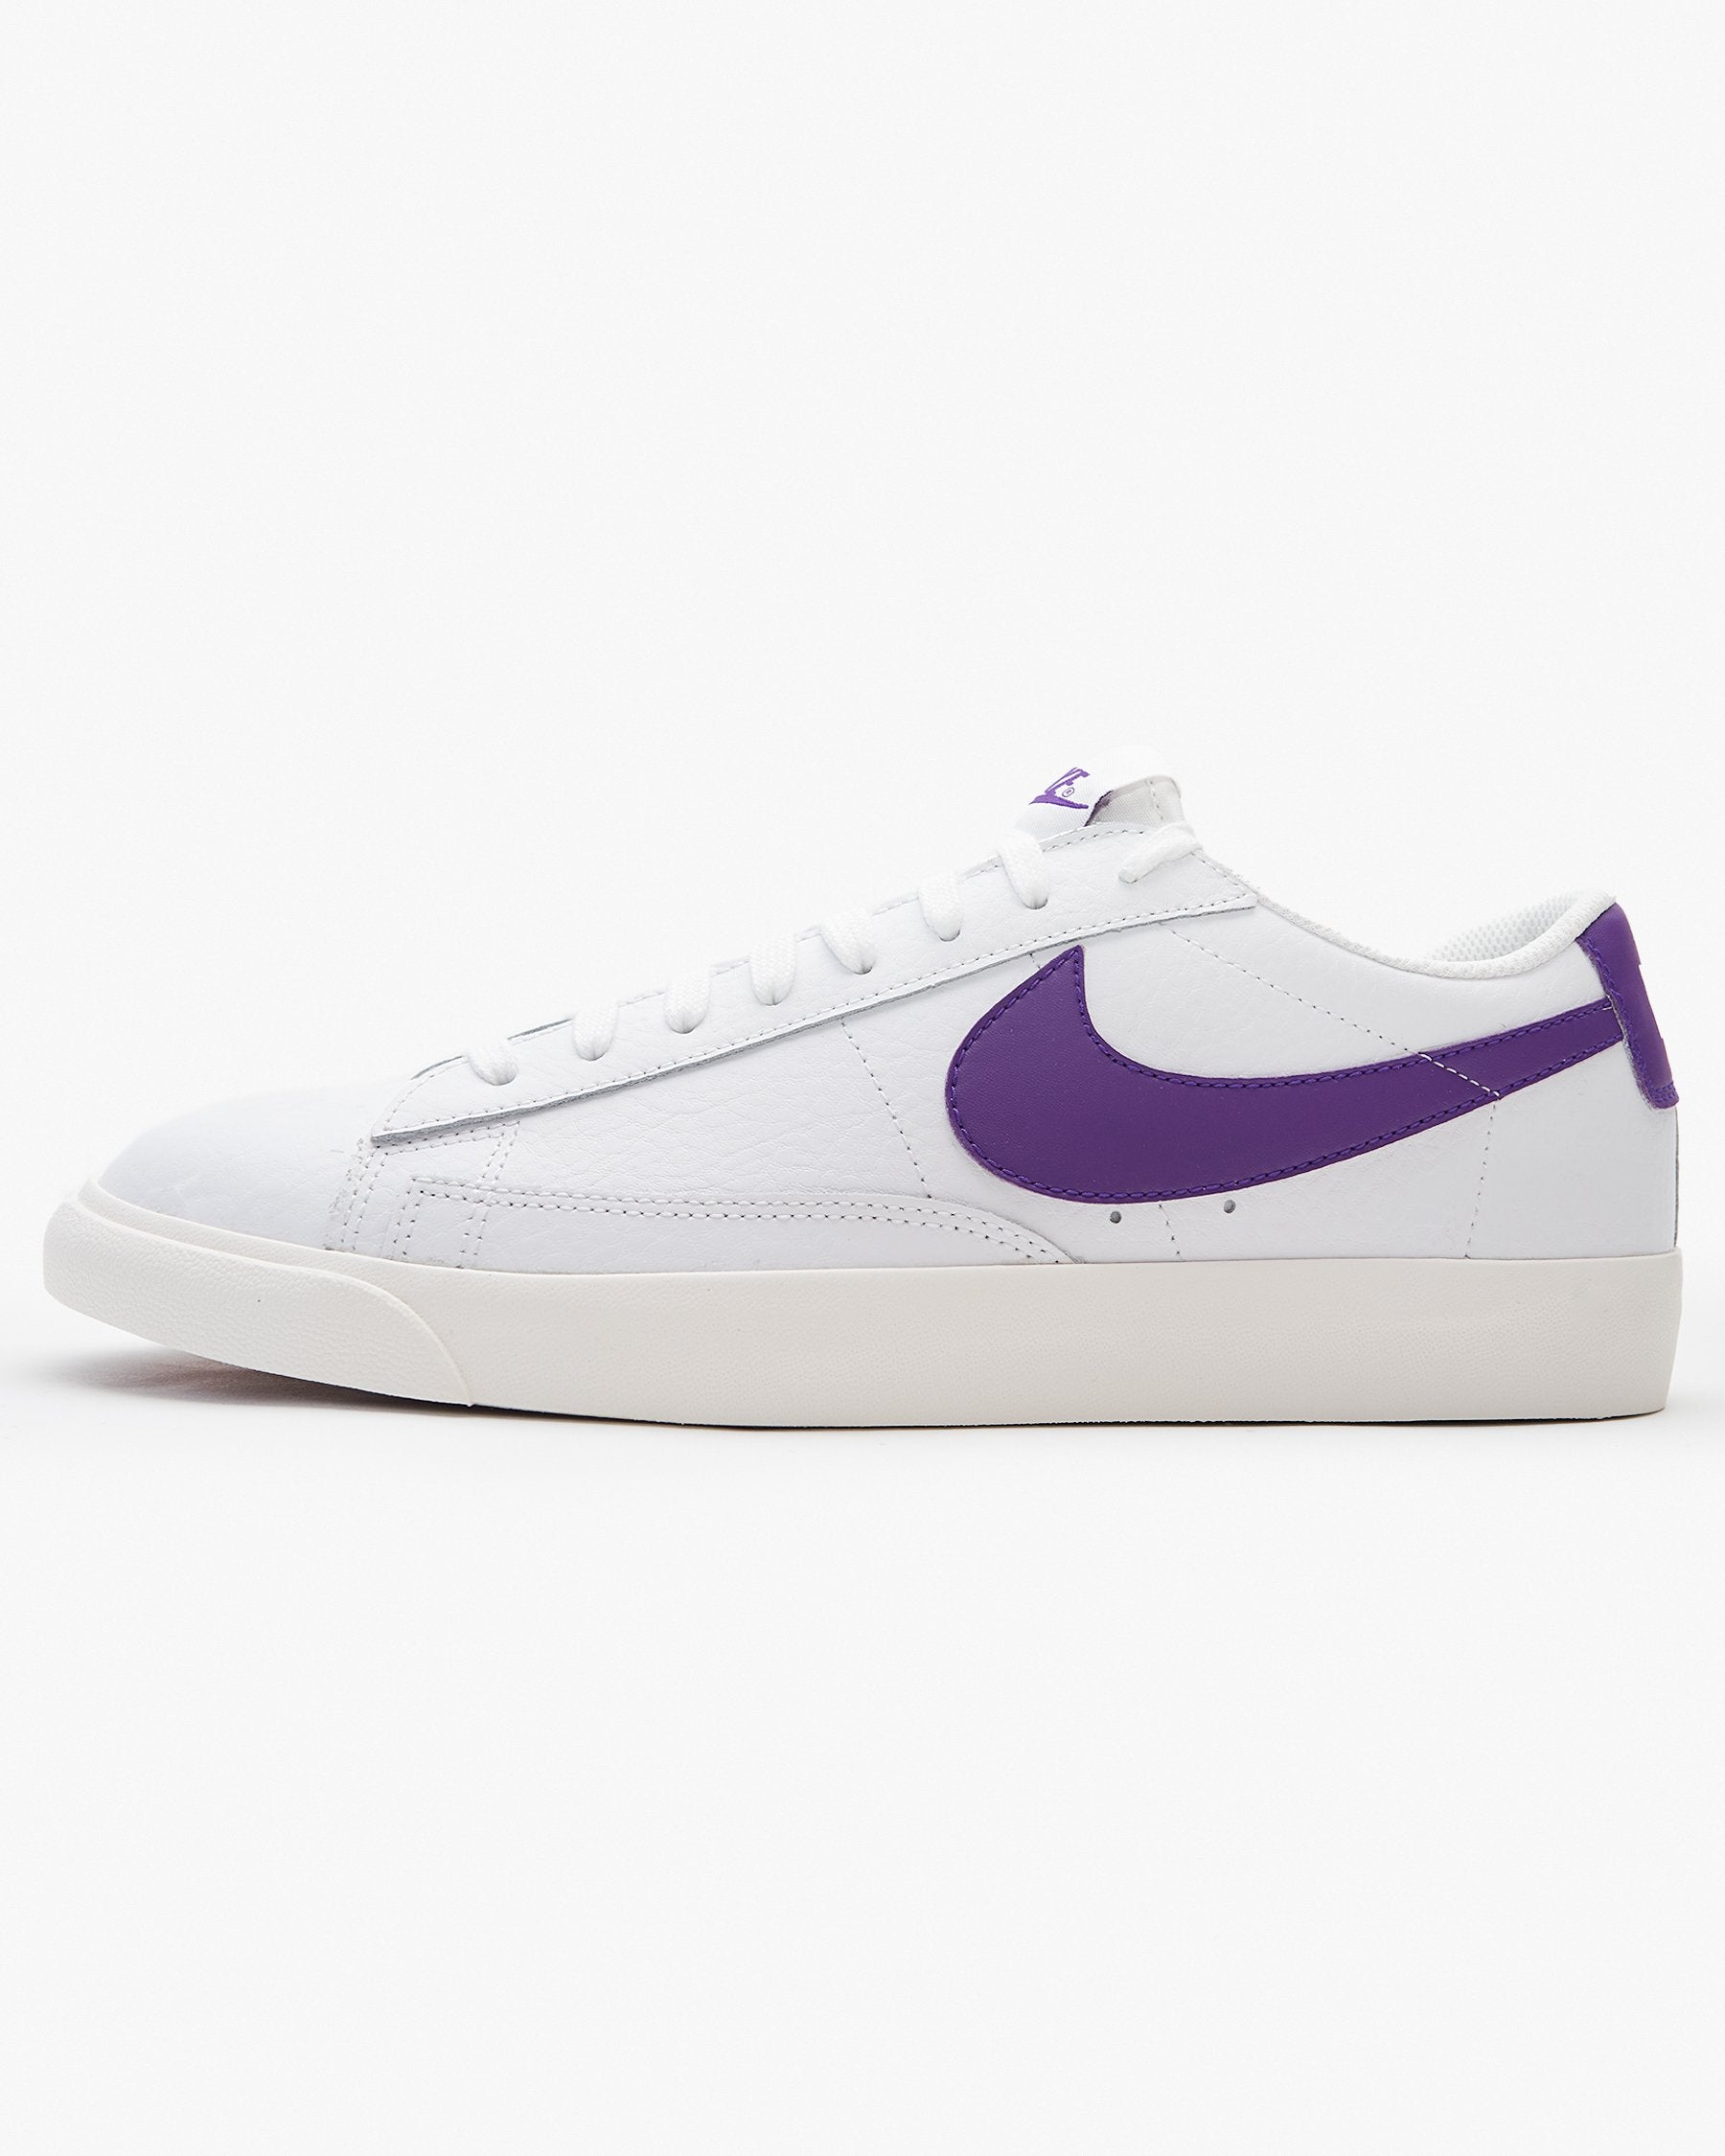 Nike Blazer Low Leather - White / Sail / Voltage Purple UK 7 CI63771037 193658033688 Nike Trainers